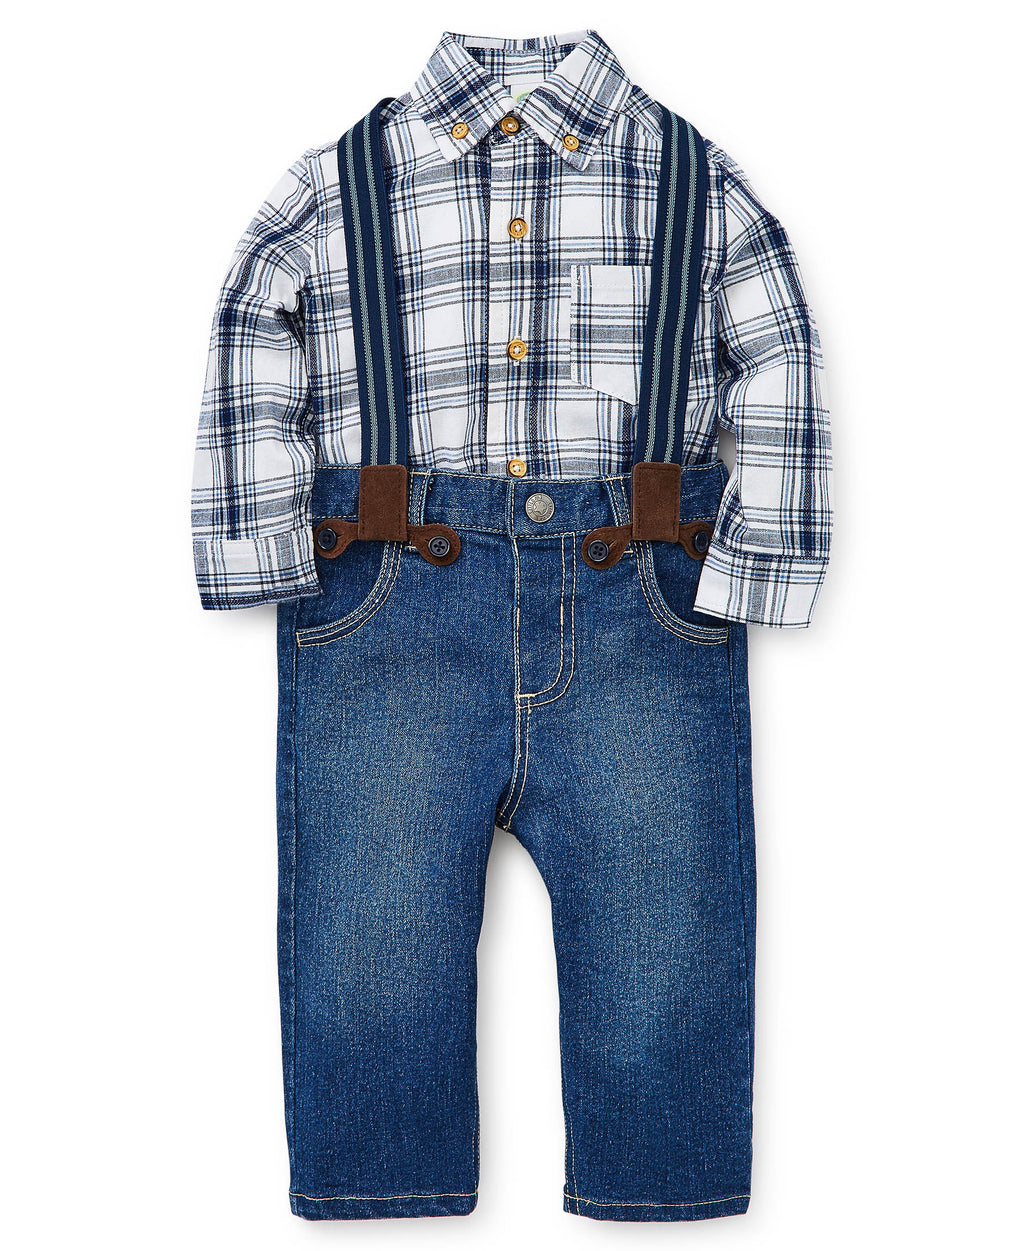 Plaid Toddler Button-Up Top and Pants